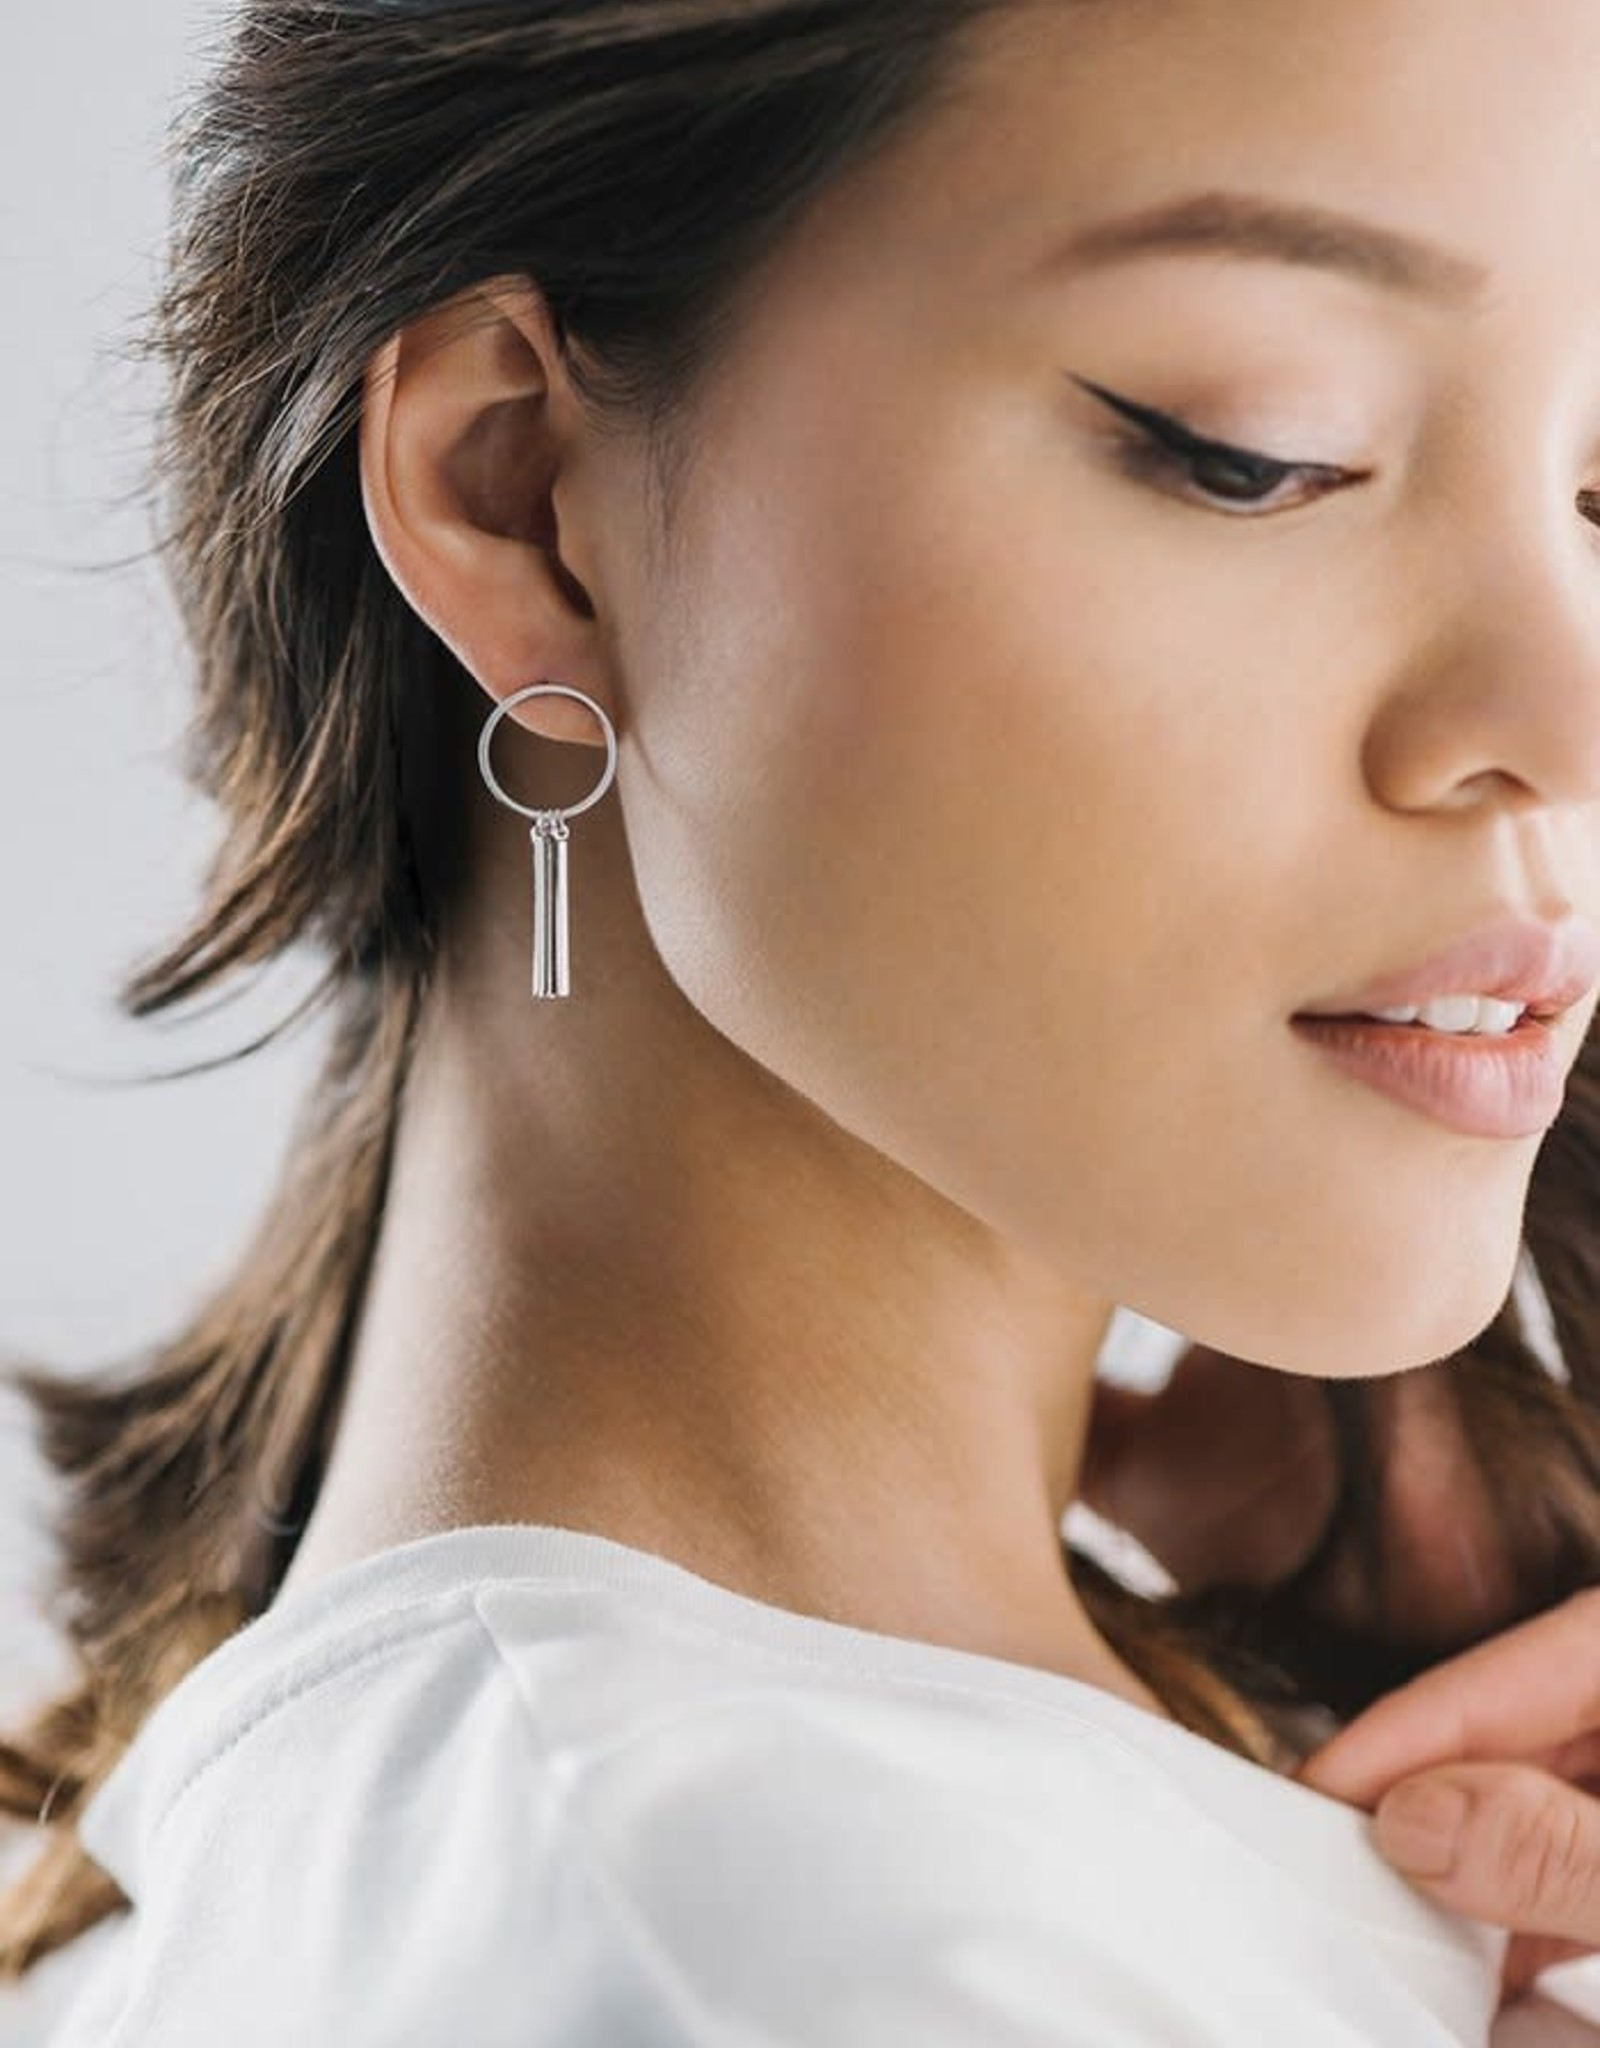 Lover's tempo Boucles d'oreilles - Ray of Light